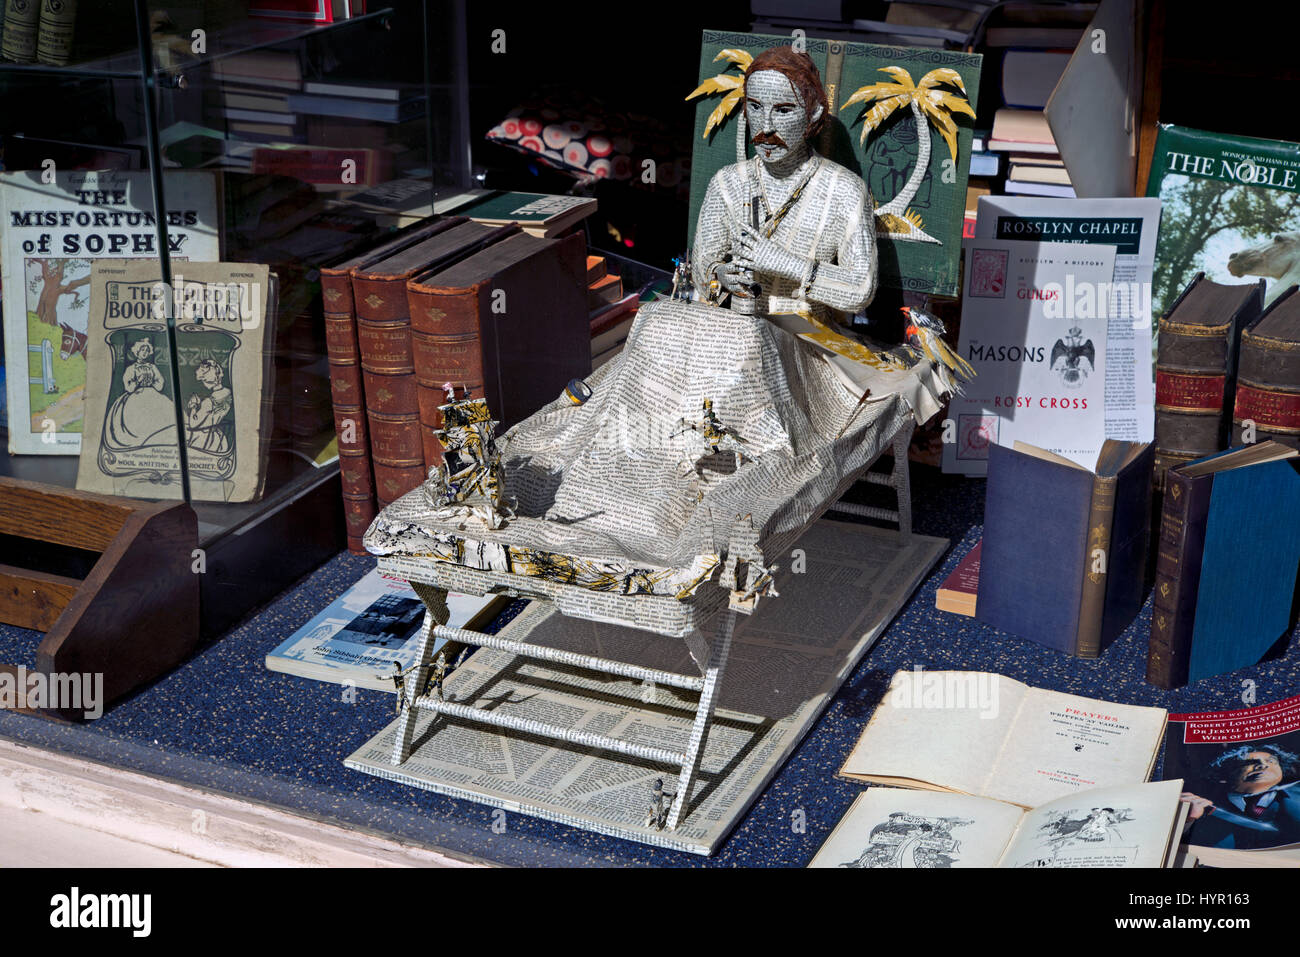 A model of Robert Louis Stevenson made from the pages of a book in the window of a secondhand bookshop in Edinburgh, - Stock Image